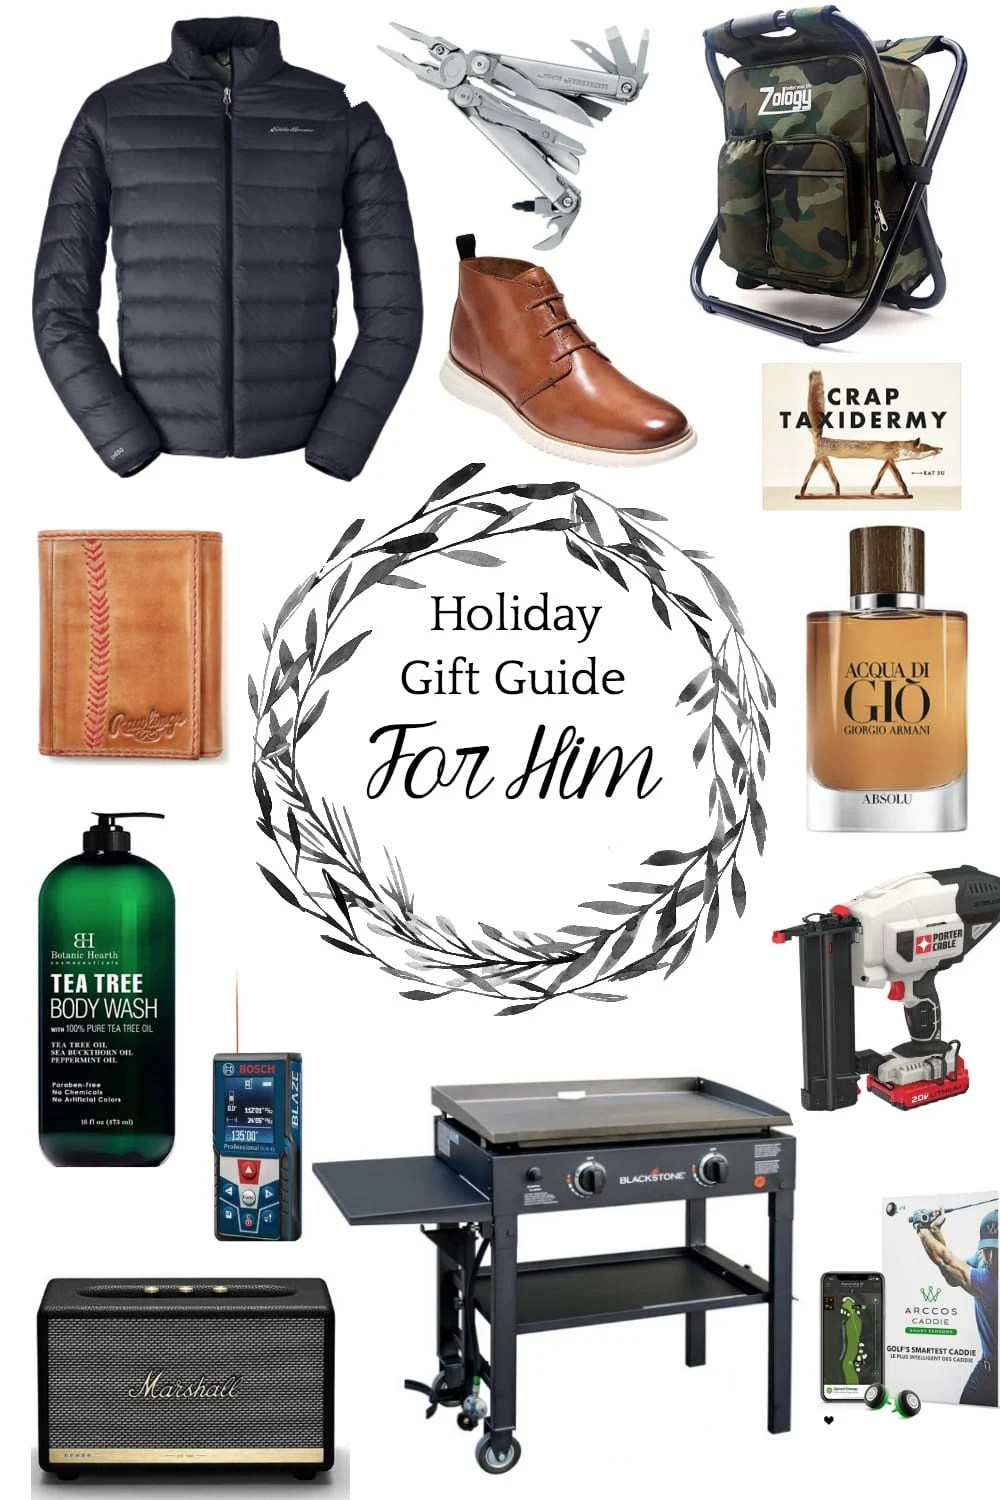 Christmas Gift Ideas for Men | Great gift ideas for all kinds of guys who love outdoors, golfing, working out, cooking, DIYing, relaxing, or just plain like to look good.